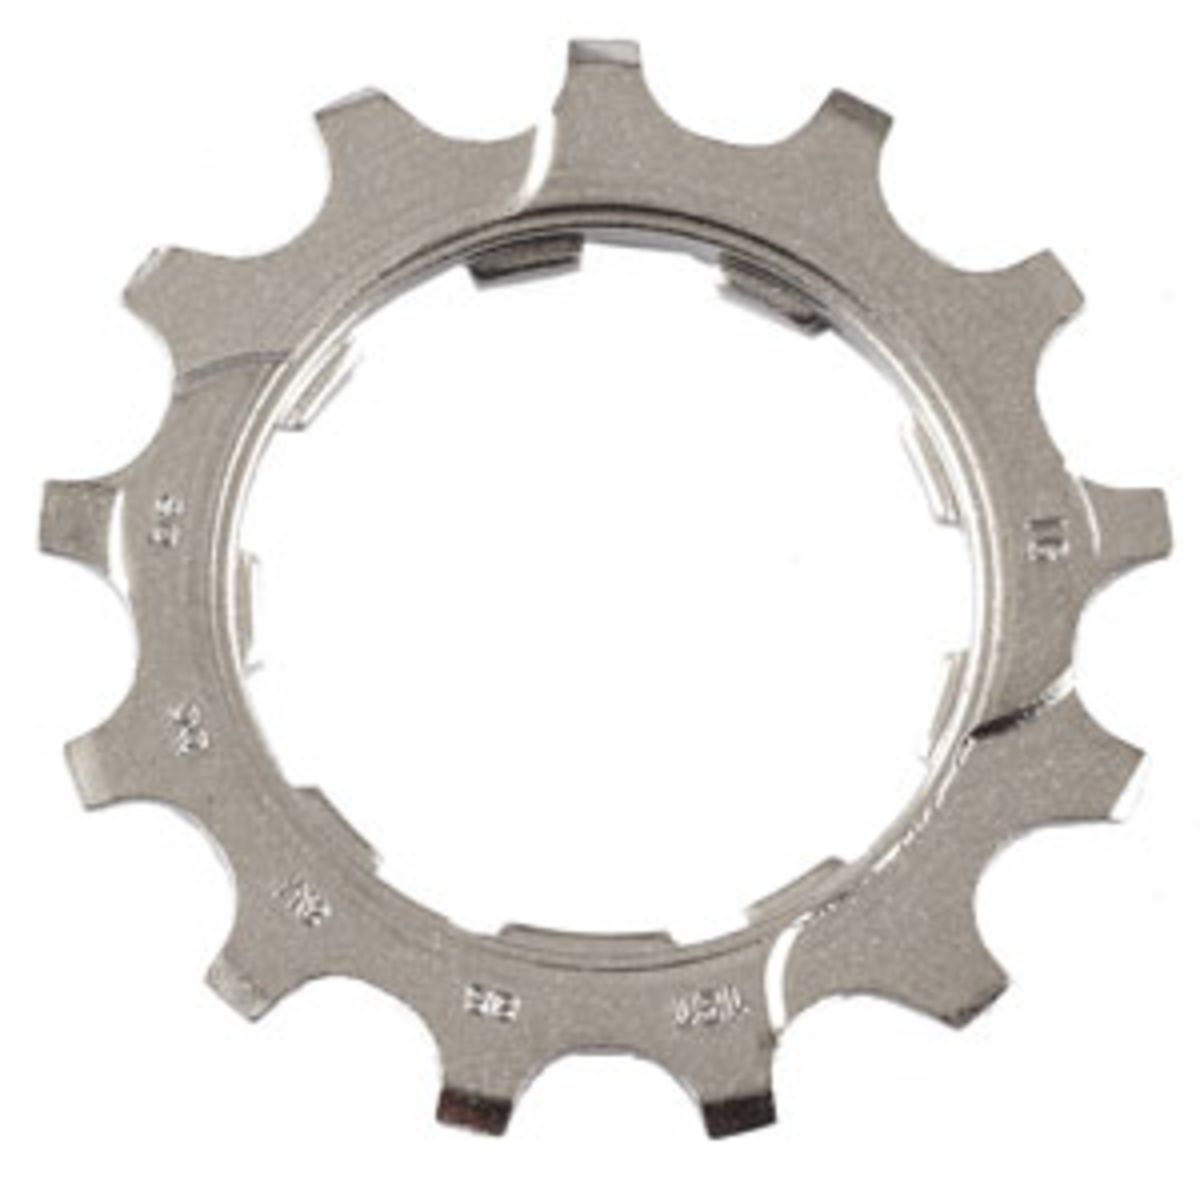 CS-M770 9-speed, 13-tooth replacement sprocket